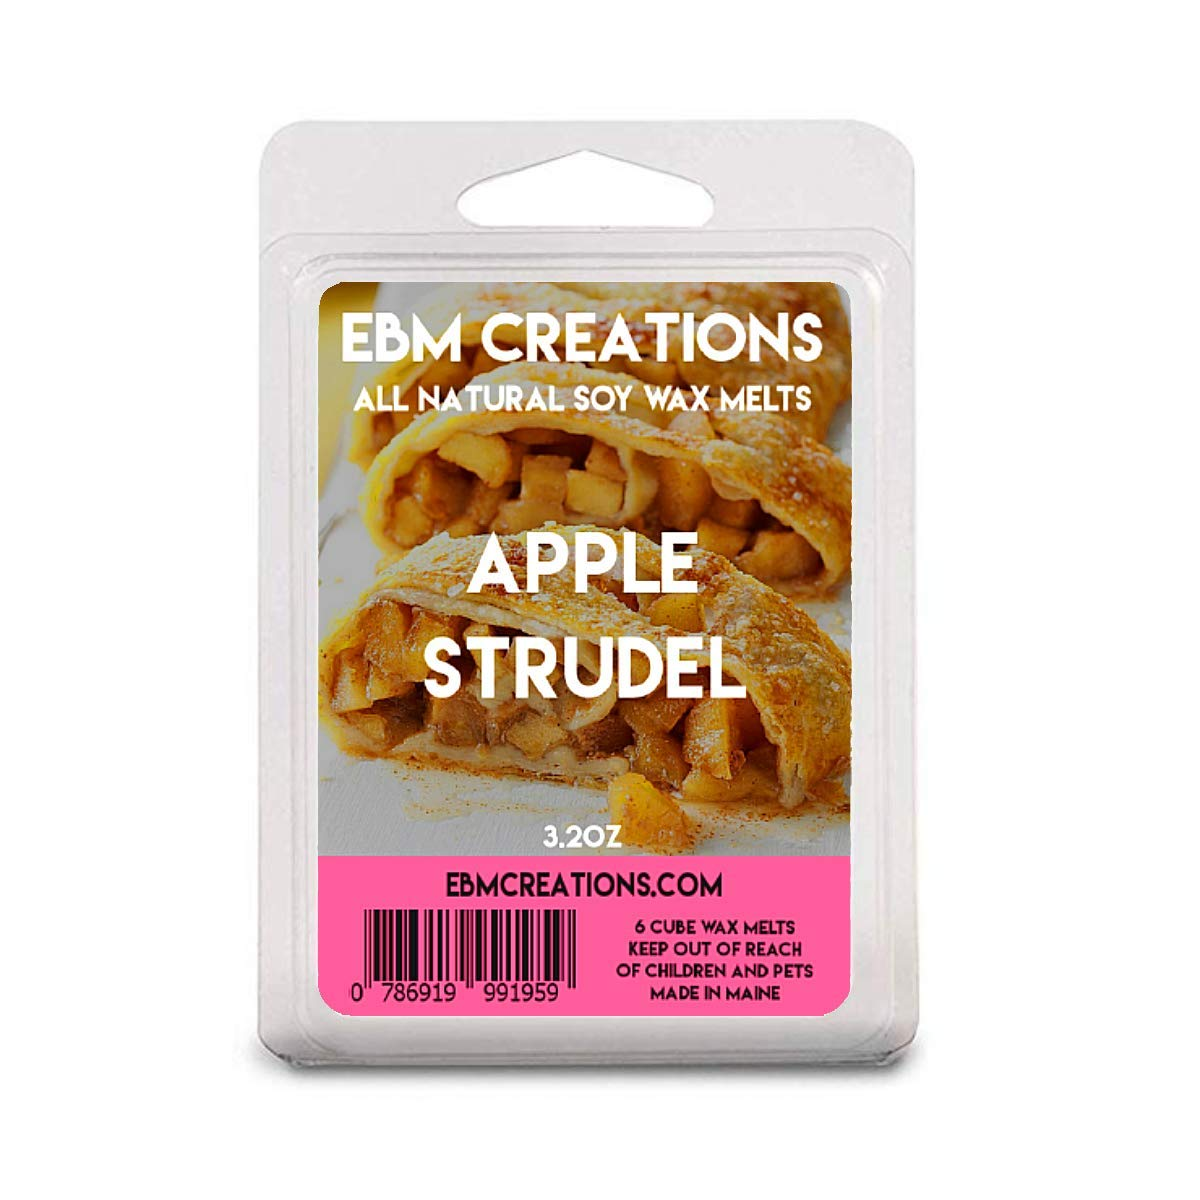 Apple Strudel - Scented All Natural Soy Wax Melts - 6 Cube Clamshell 3.2oz Highly Scented!